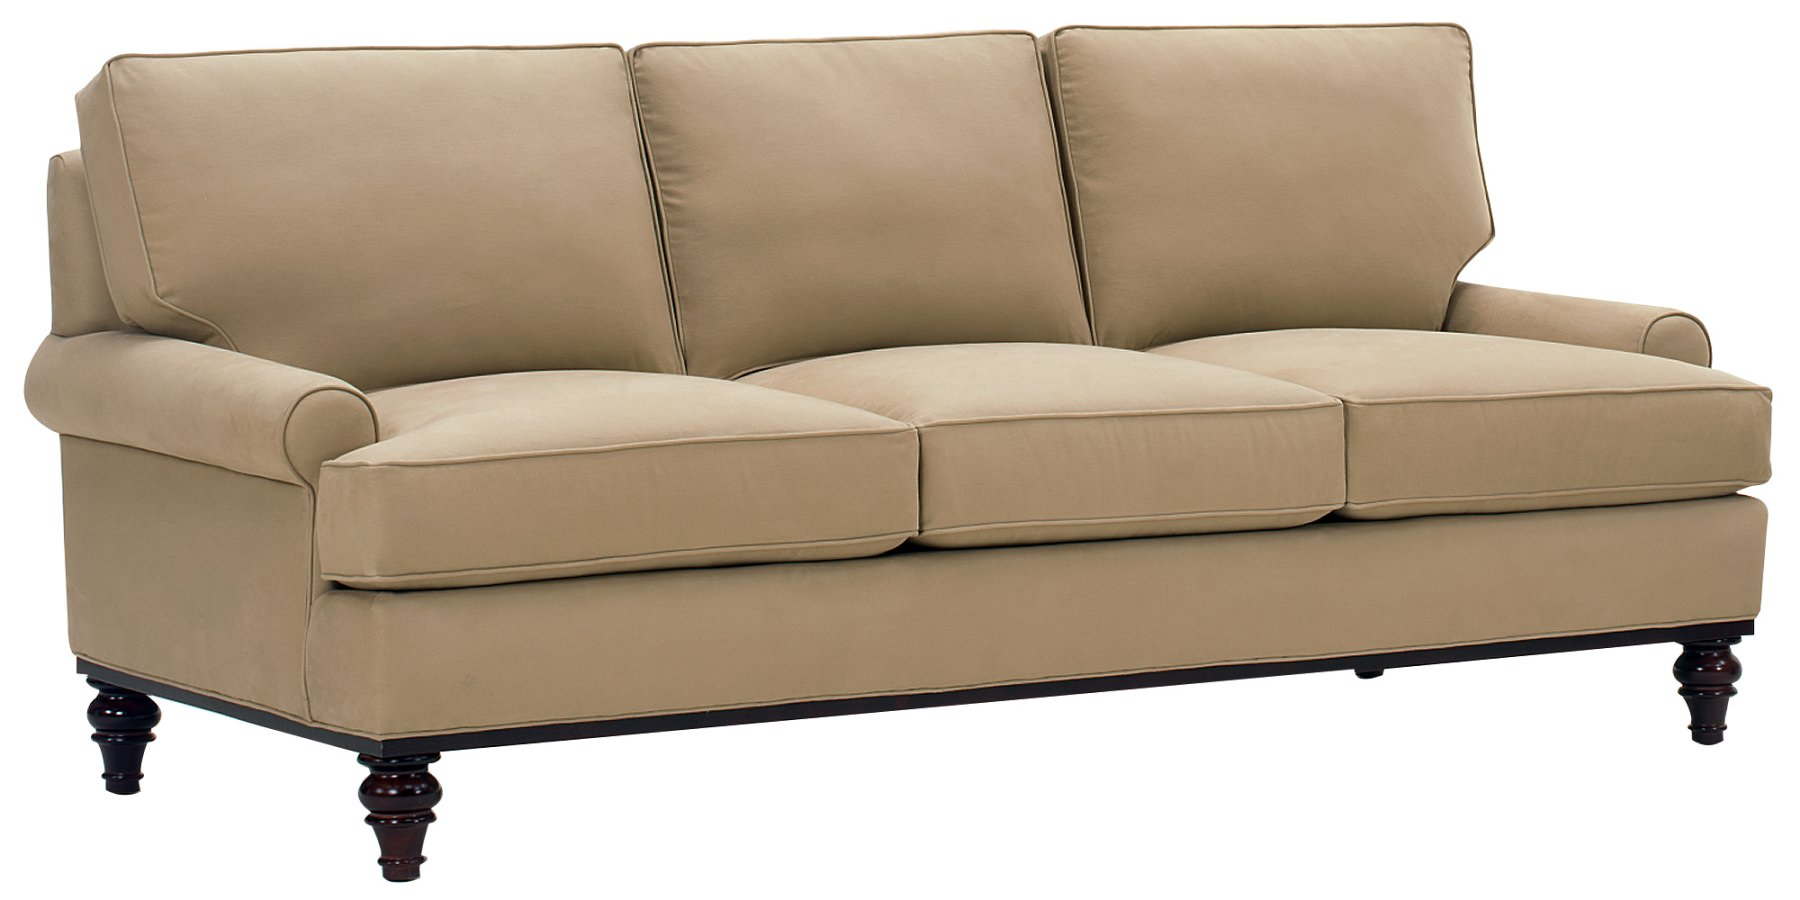 Couches Loveseat Upholstered Chair Sofa With Decorative